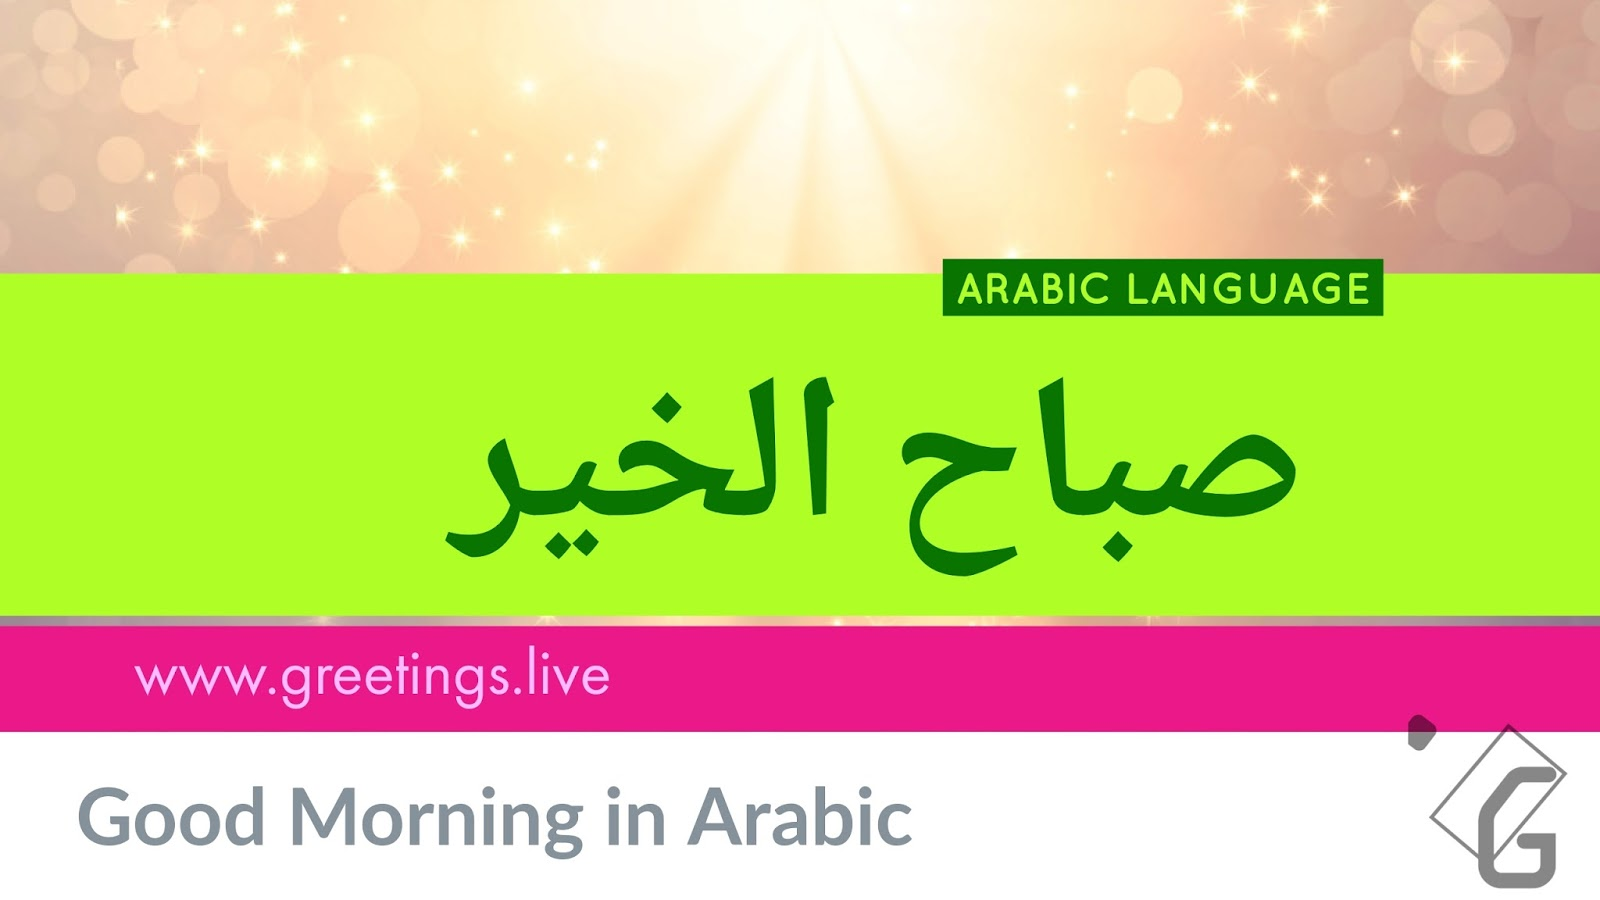 Greetingsve hd images love smile birthday wishes free download 5 morning greetings in arabic language sparkling green pink and white combination bg kristyandbryce Images